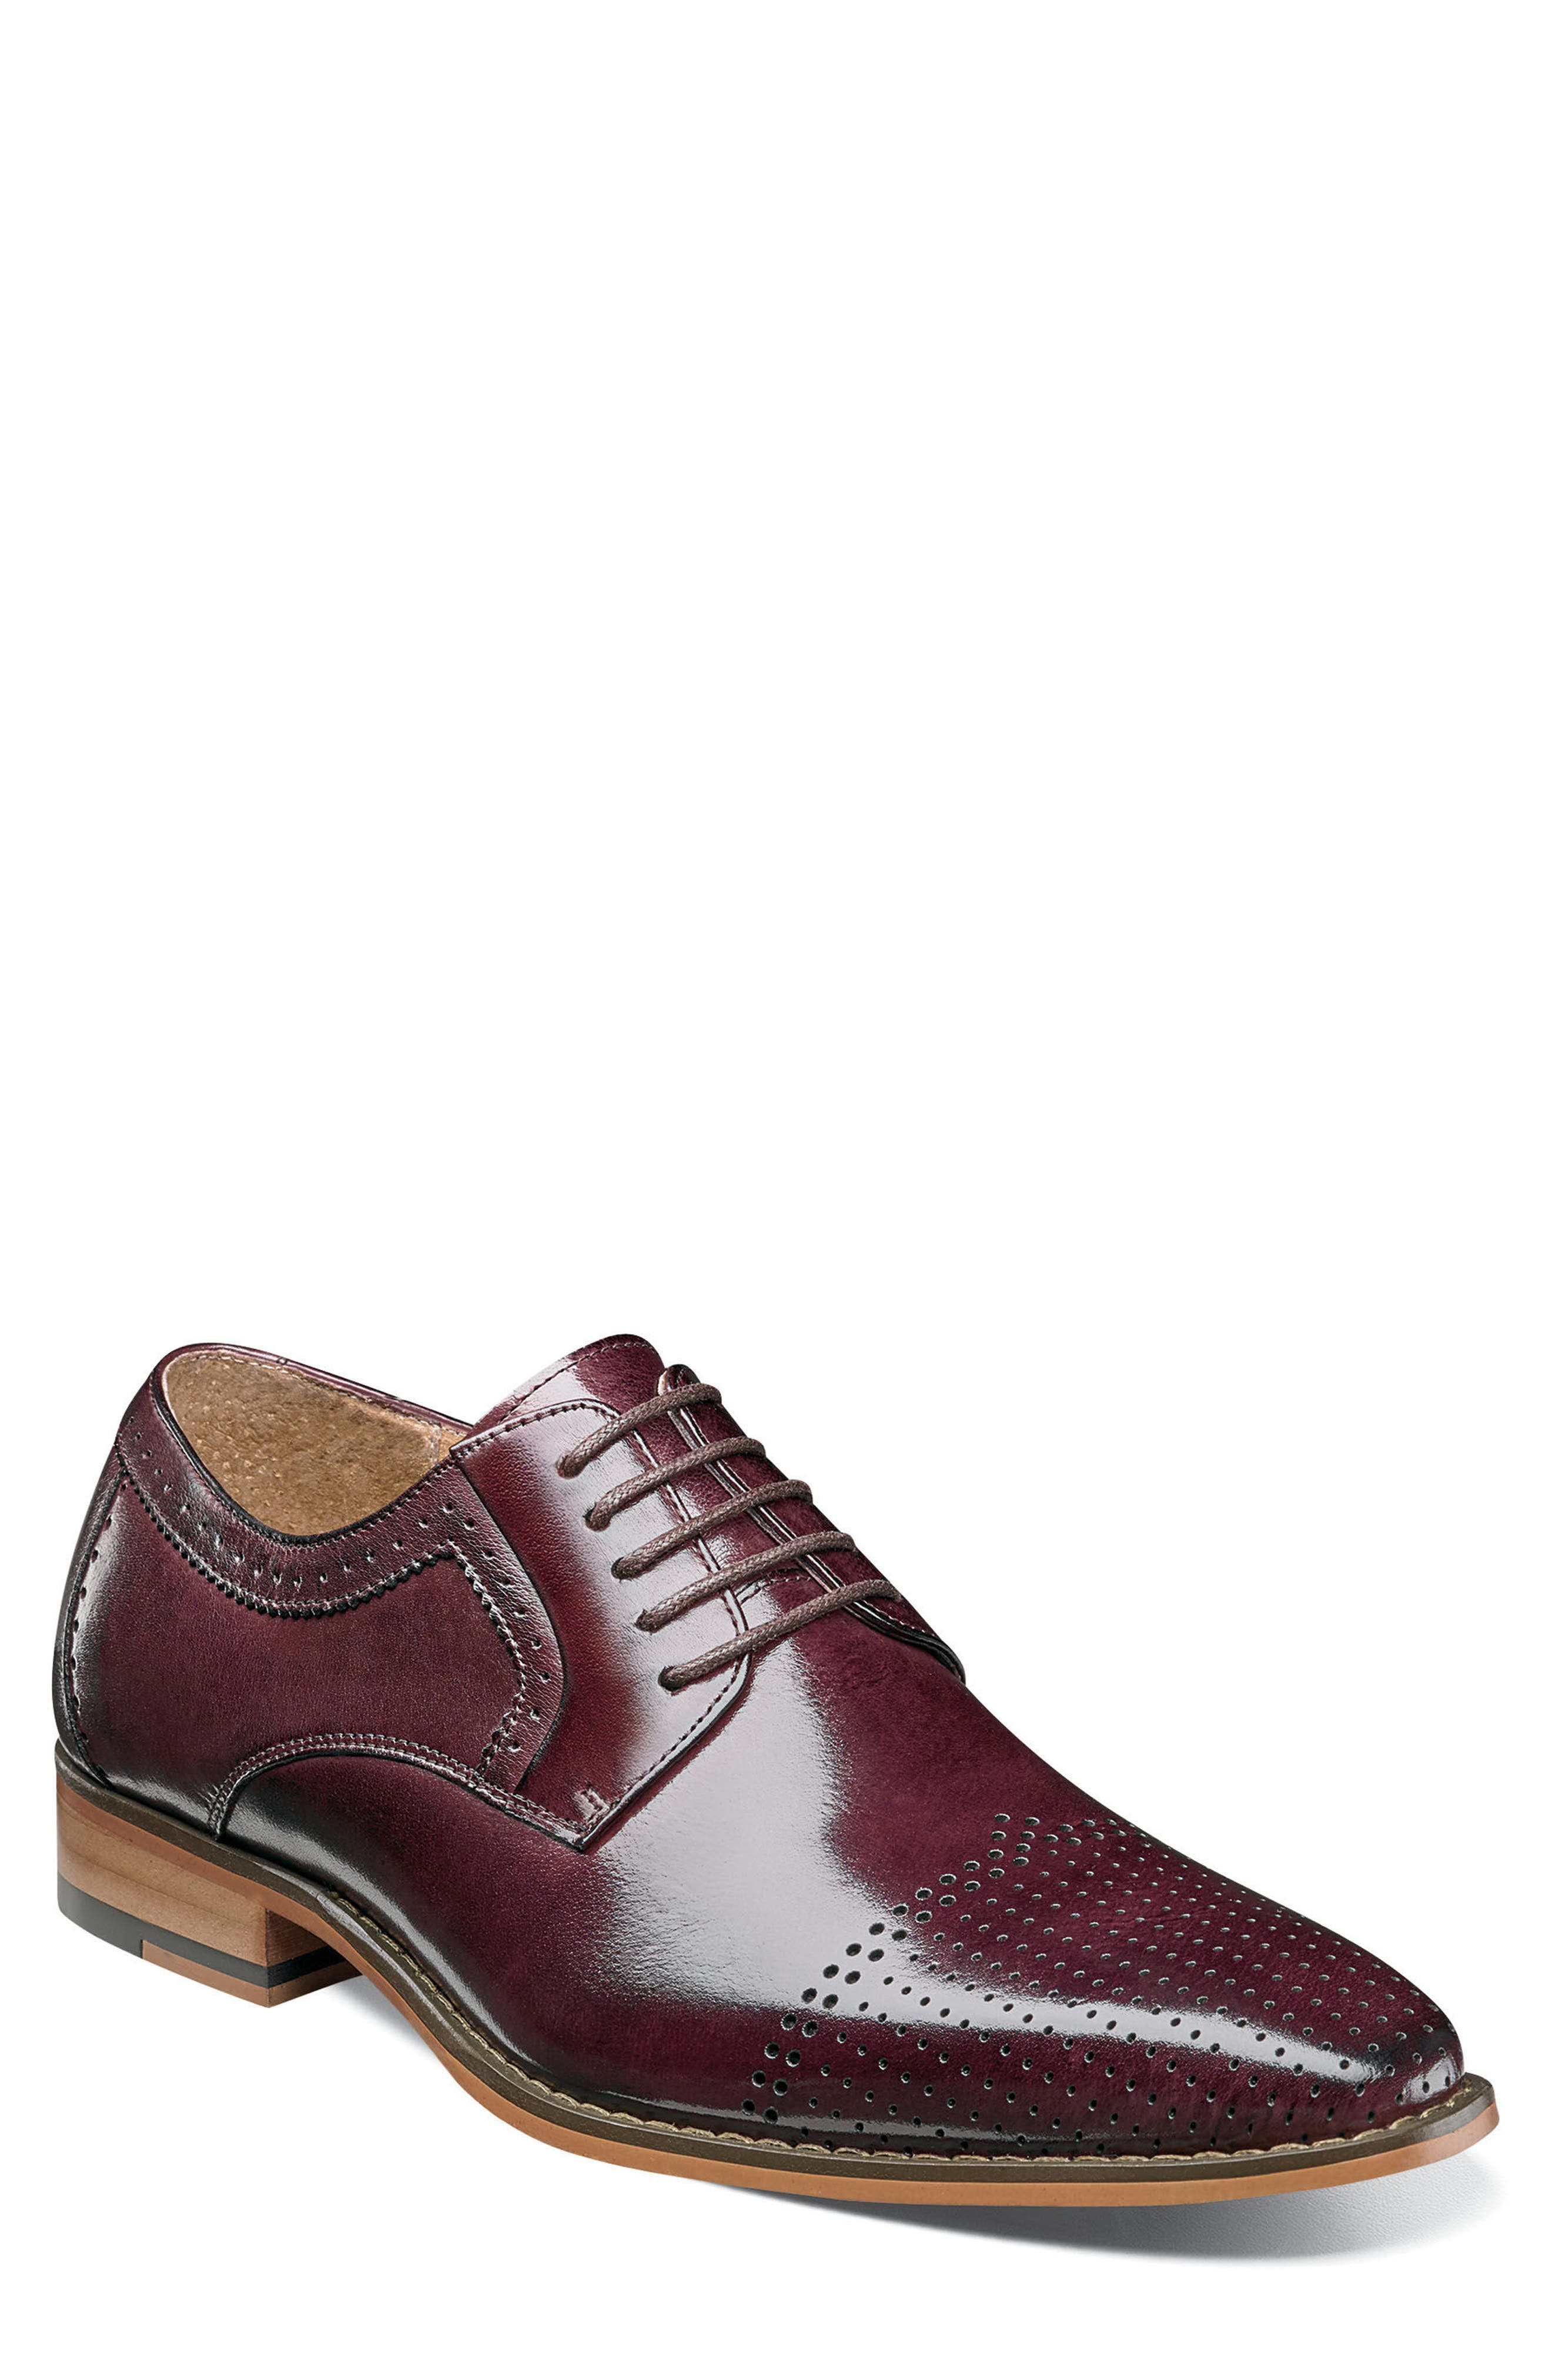 Stacy Adams Sanborn Perforated Cap Toe Derby (Men)